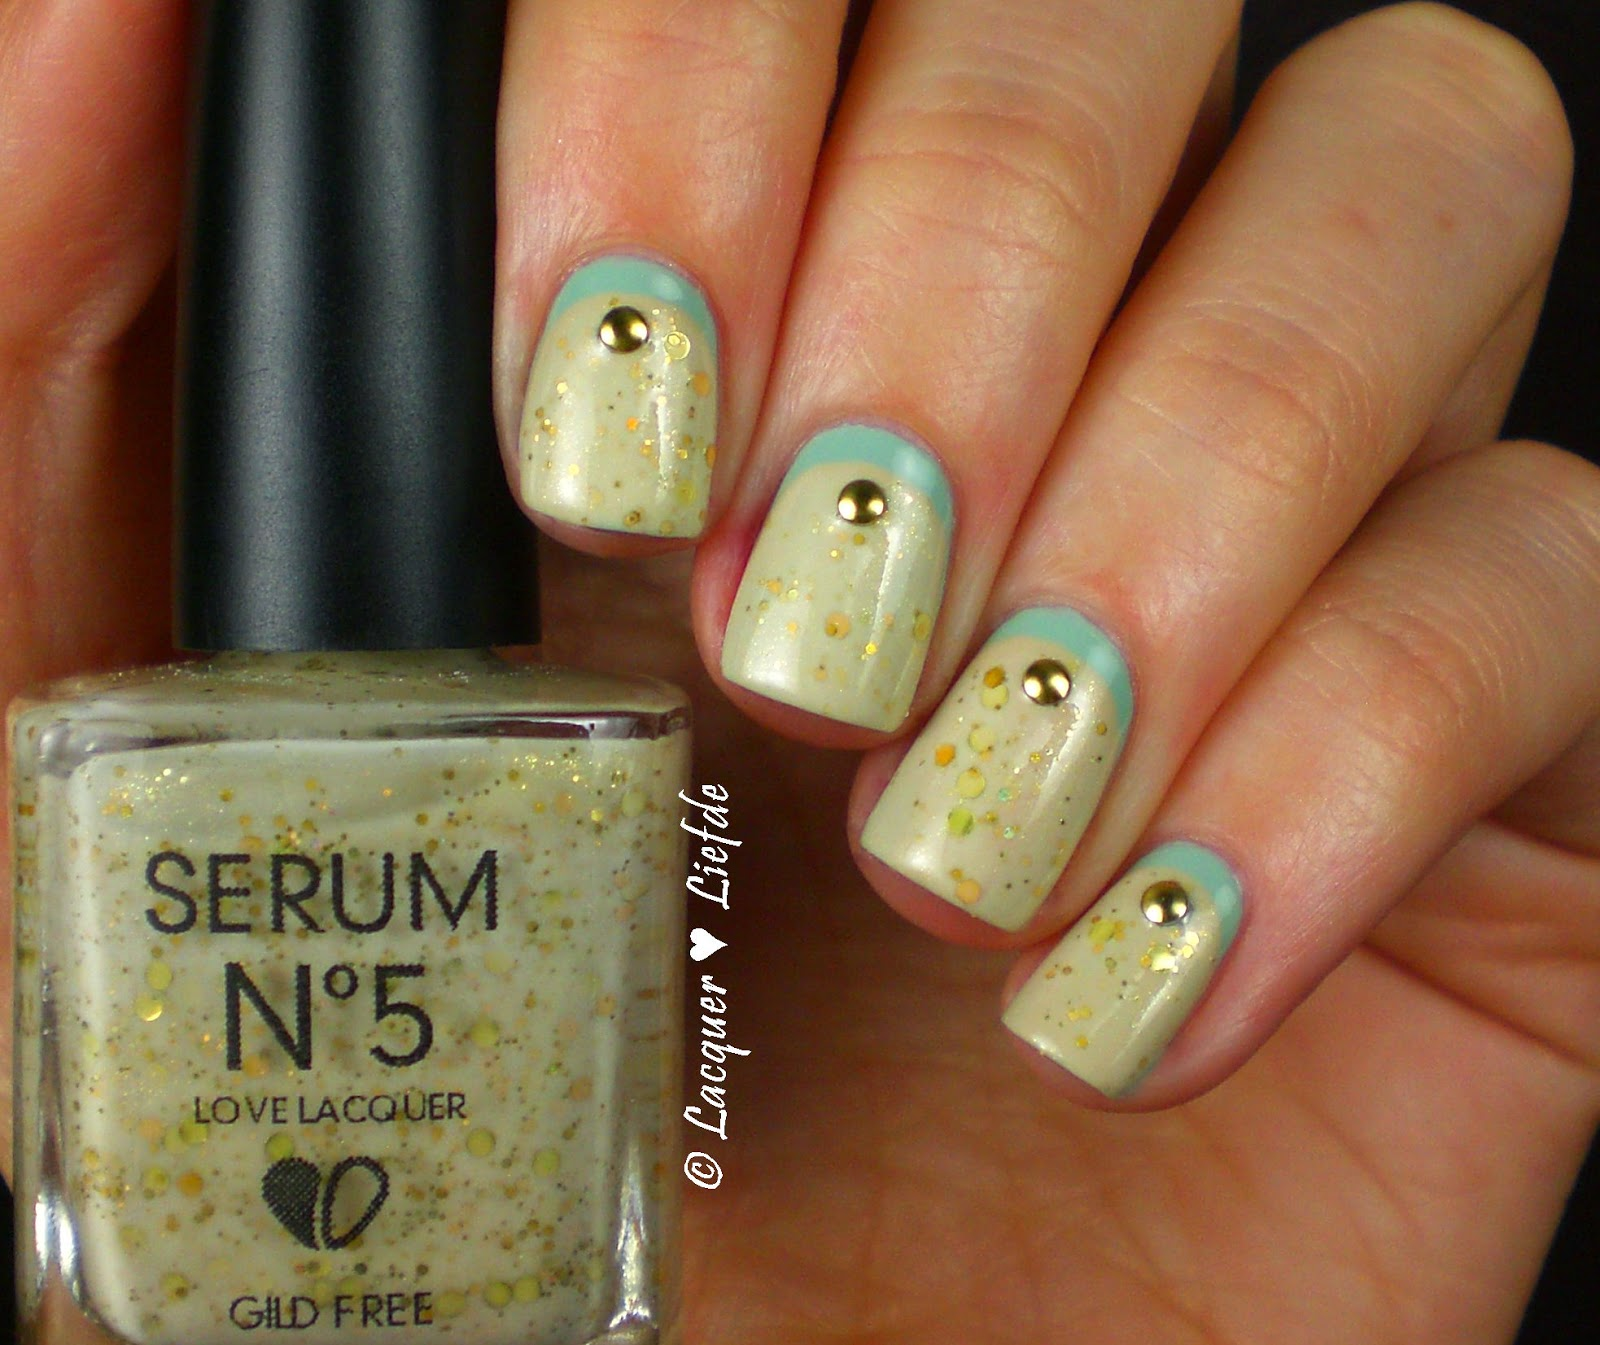 Ruffian Nails With Kiko 345 and Gild Free Serum no.5